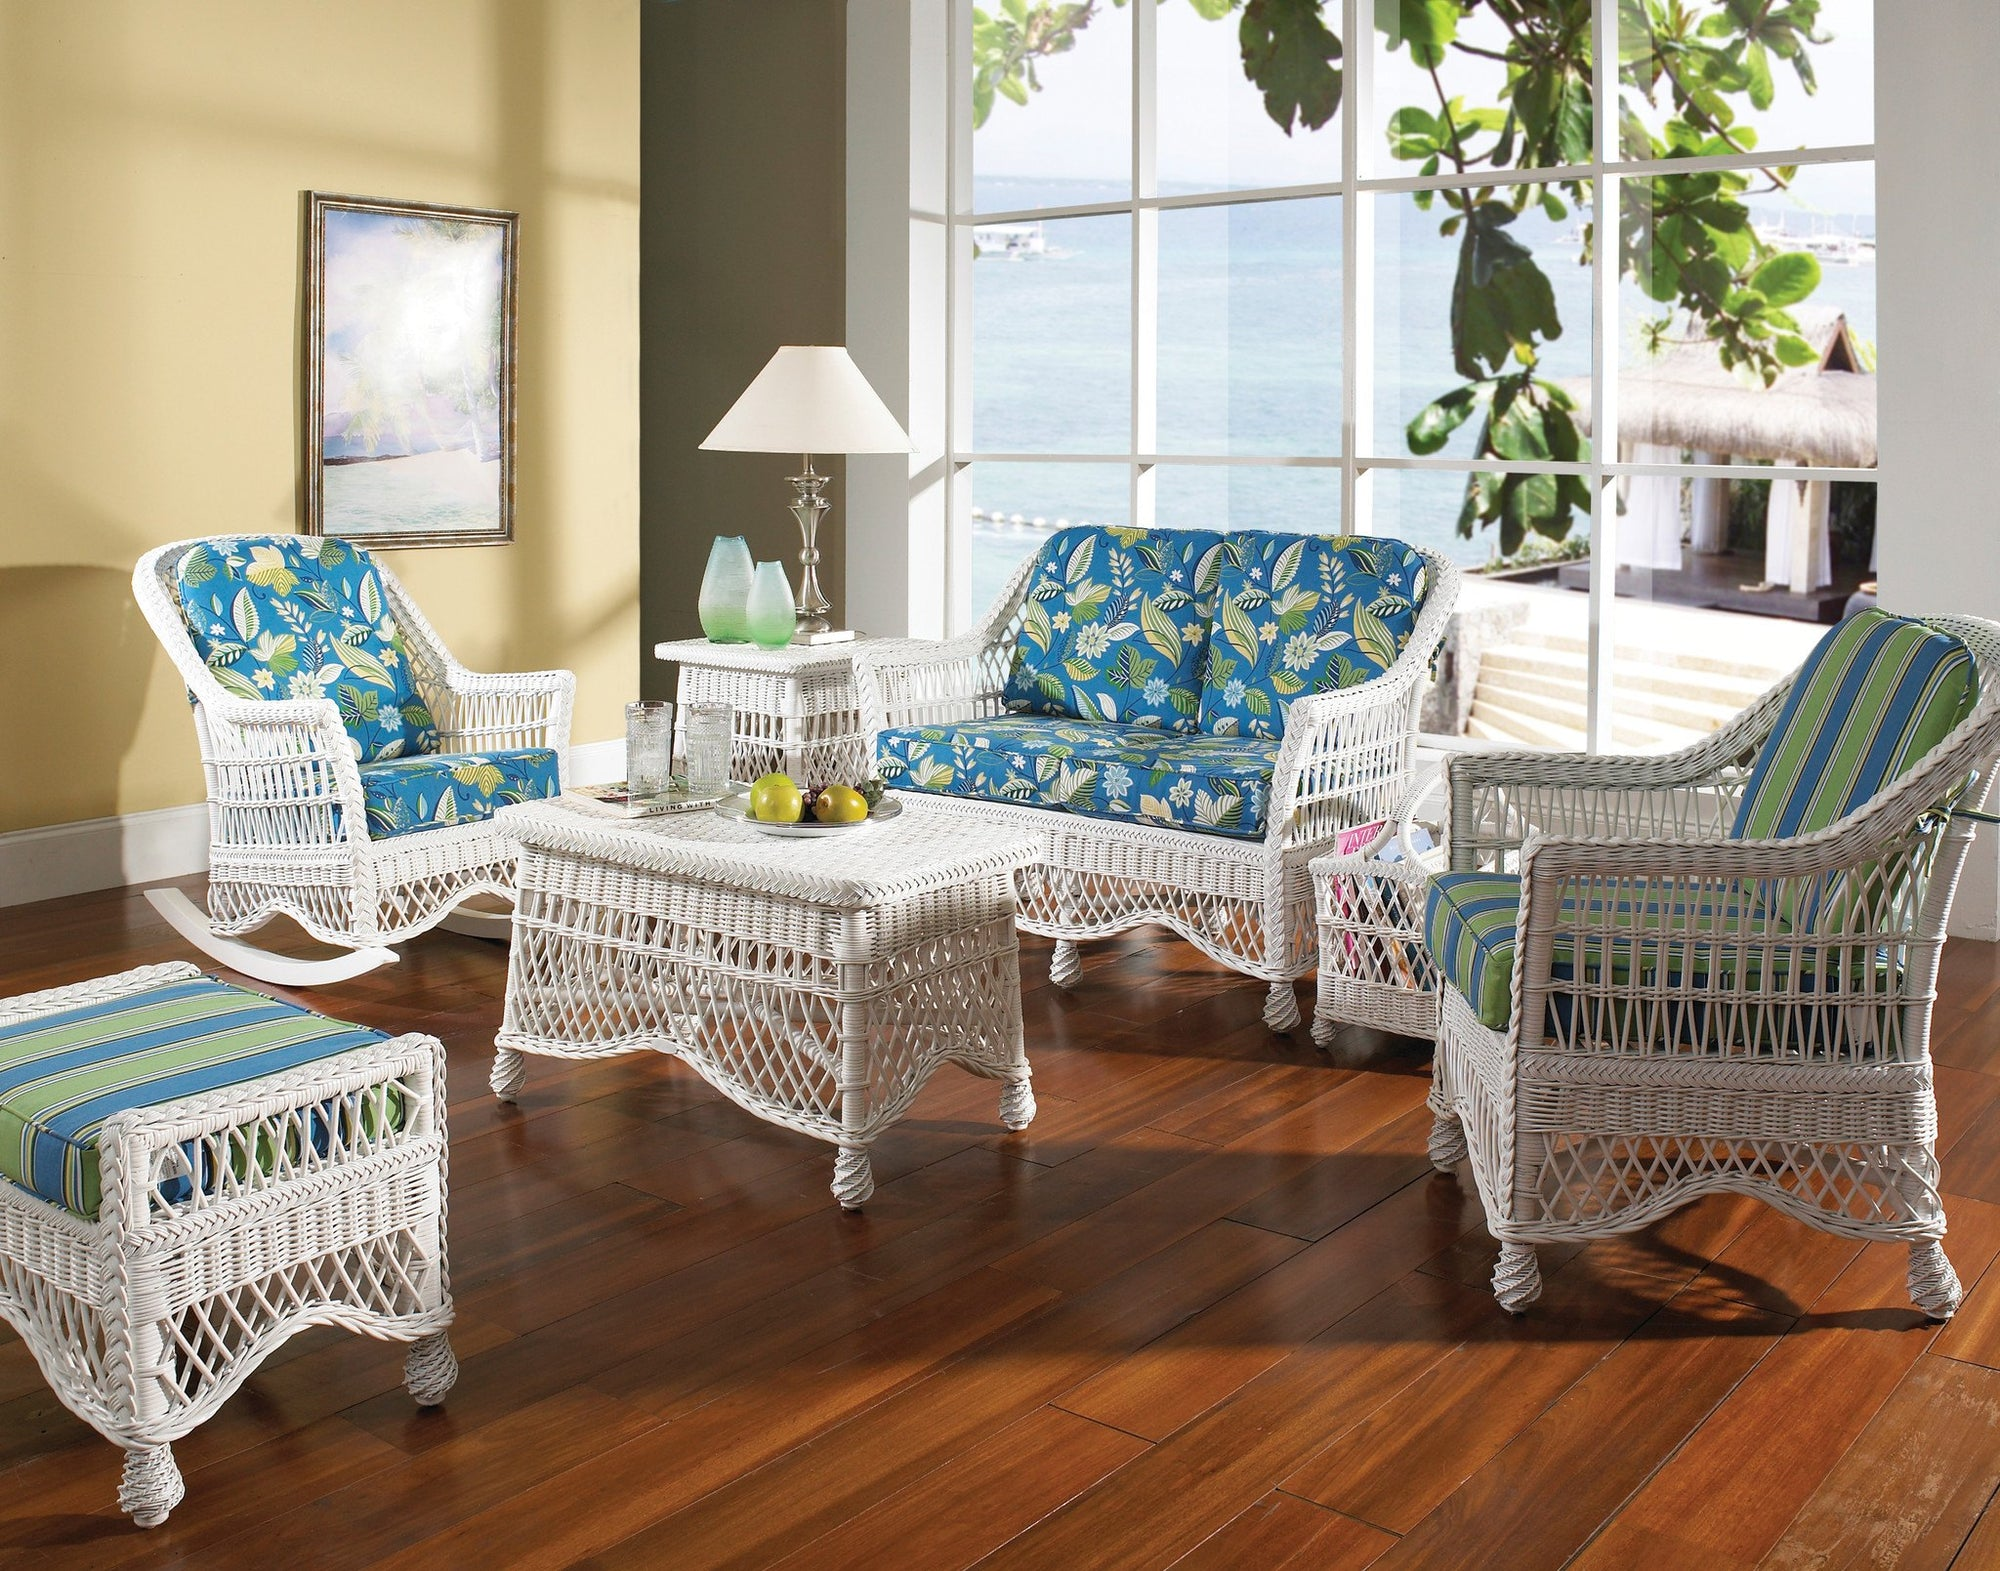 Designer Wicker & Rattan By Tribor Naples Loveseat by Designer Wicker by Tribor Loveseat - Rattan Imports